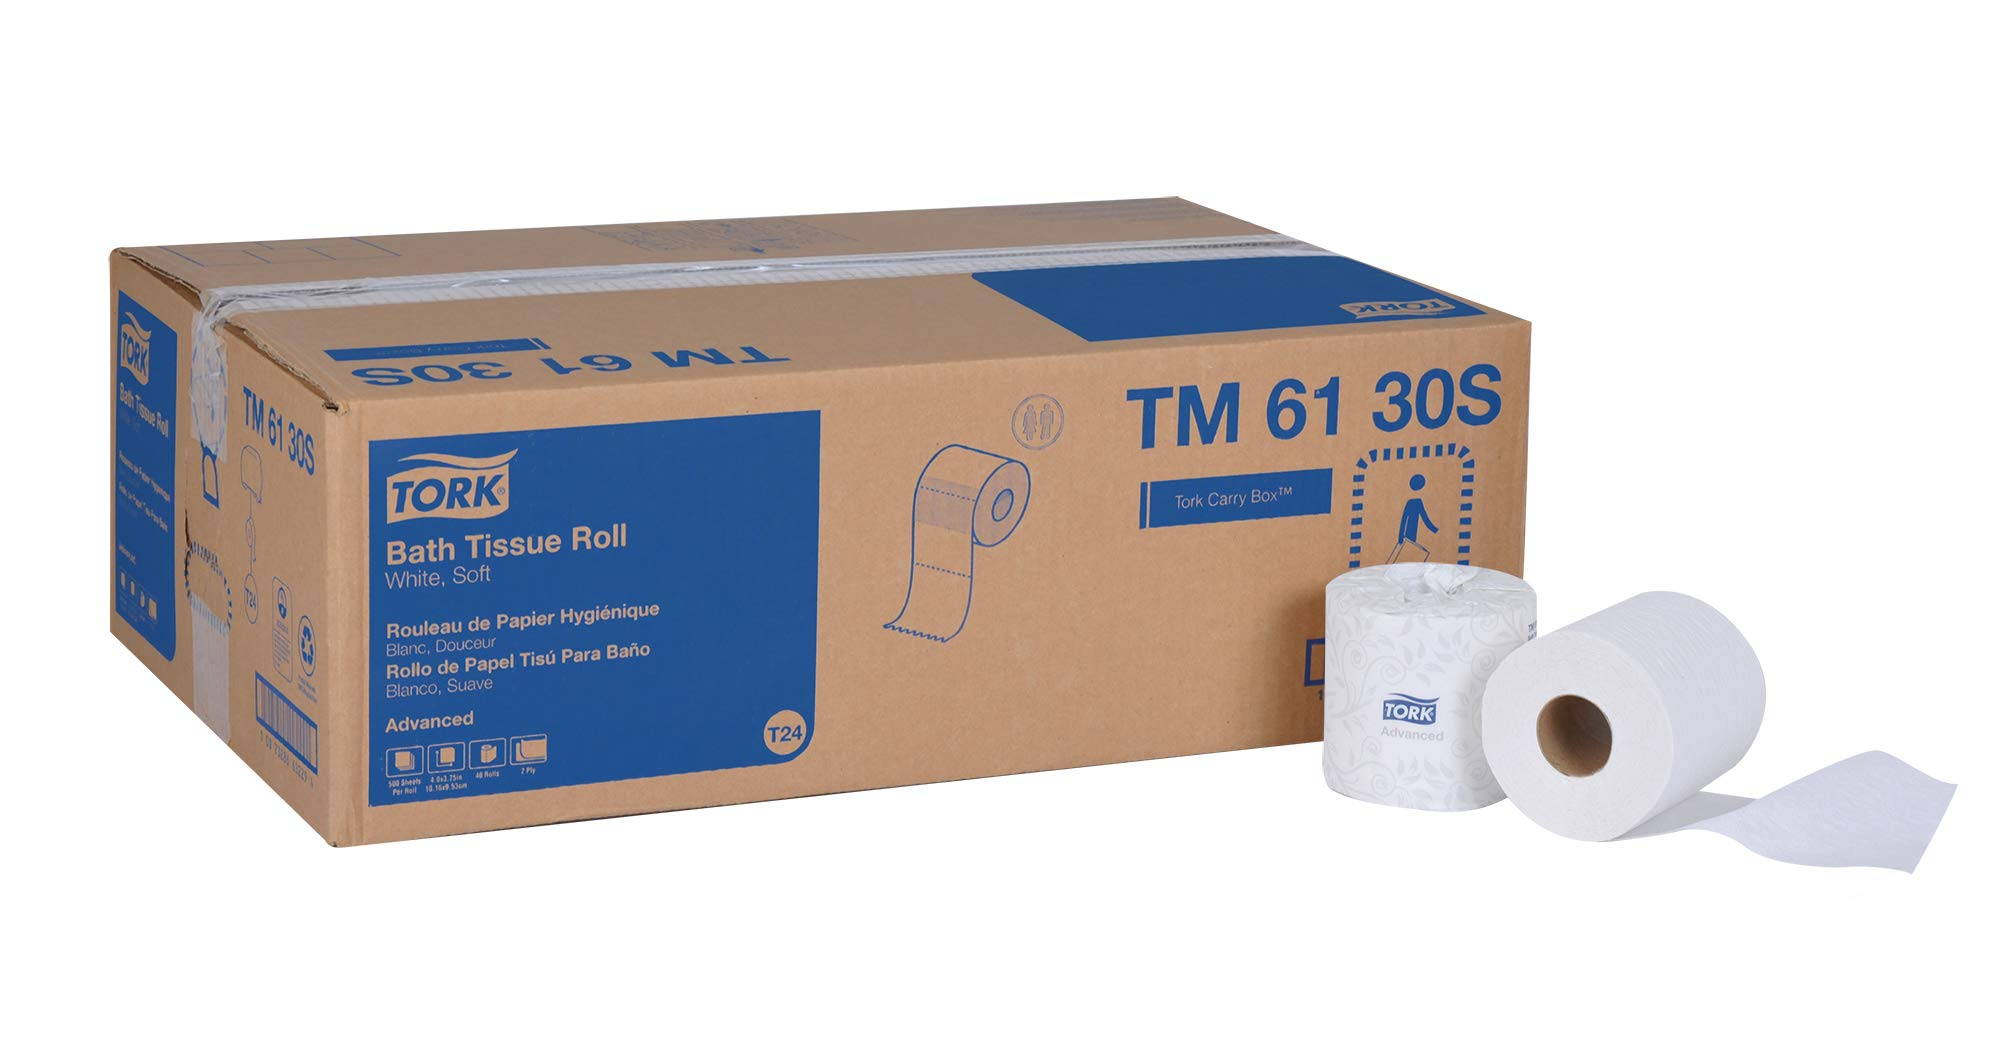 Tork Advanced TM6130S Bath Tissue Roll, 2-Ply, 4'' Width x 3.75'' Length, White (Case of 48 Rolls, 500 per Roll, 24,000 Sheets)